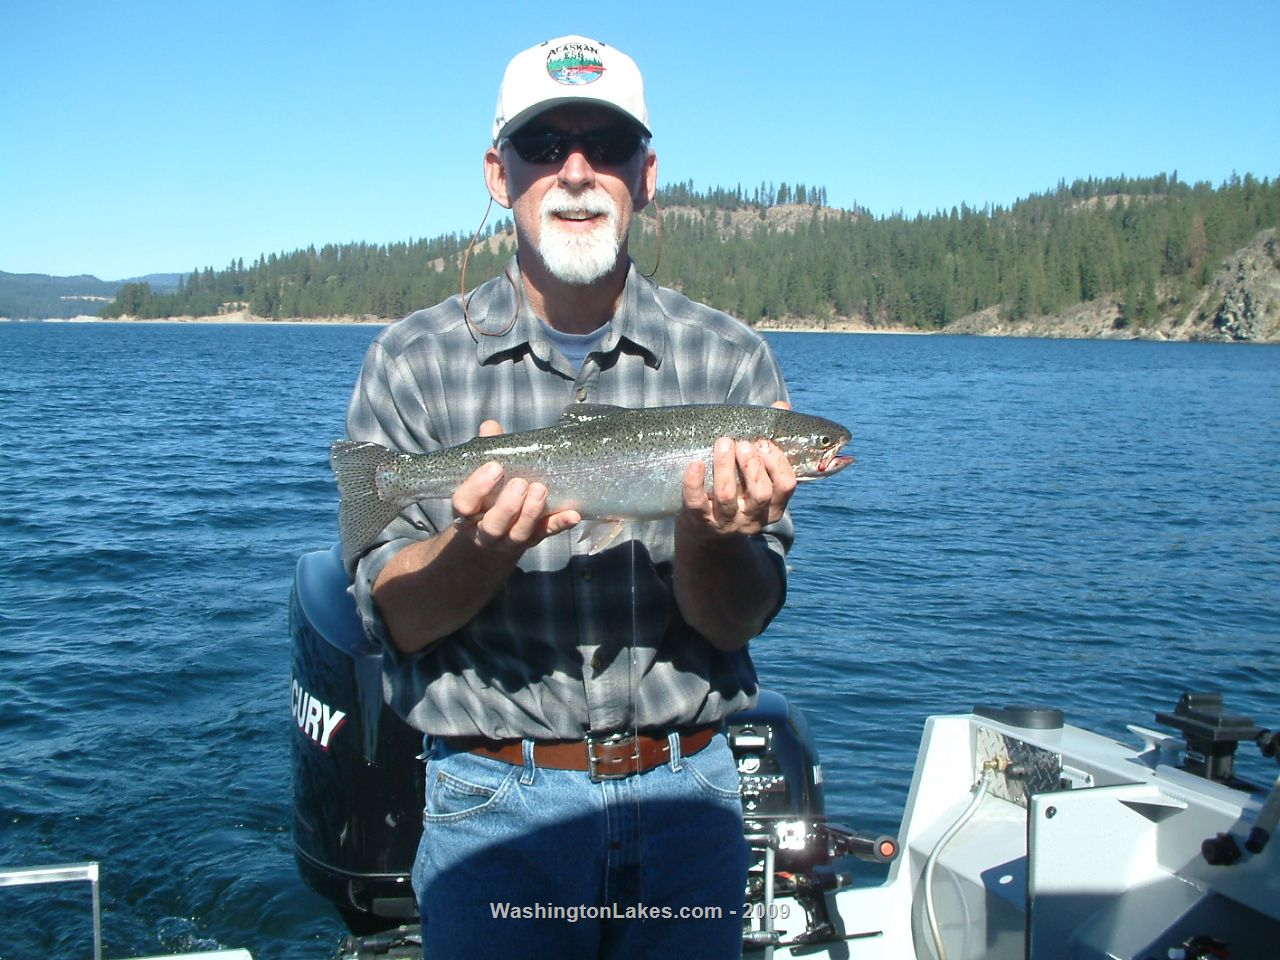 19 spokane confluence to lake roosevelt north end for Wdfw fishing emergency rules